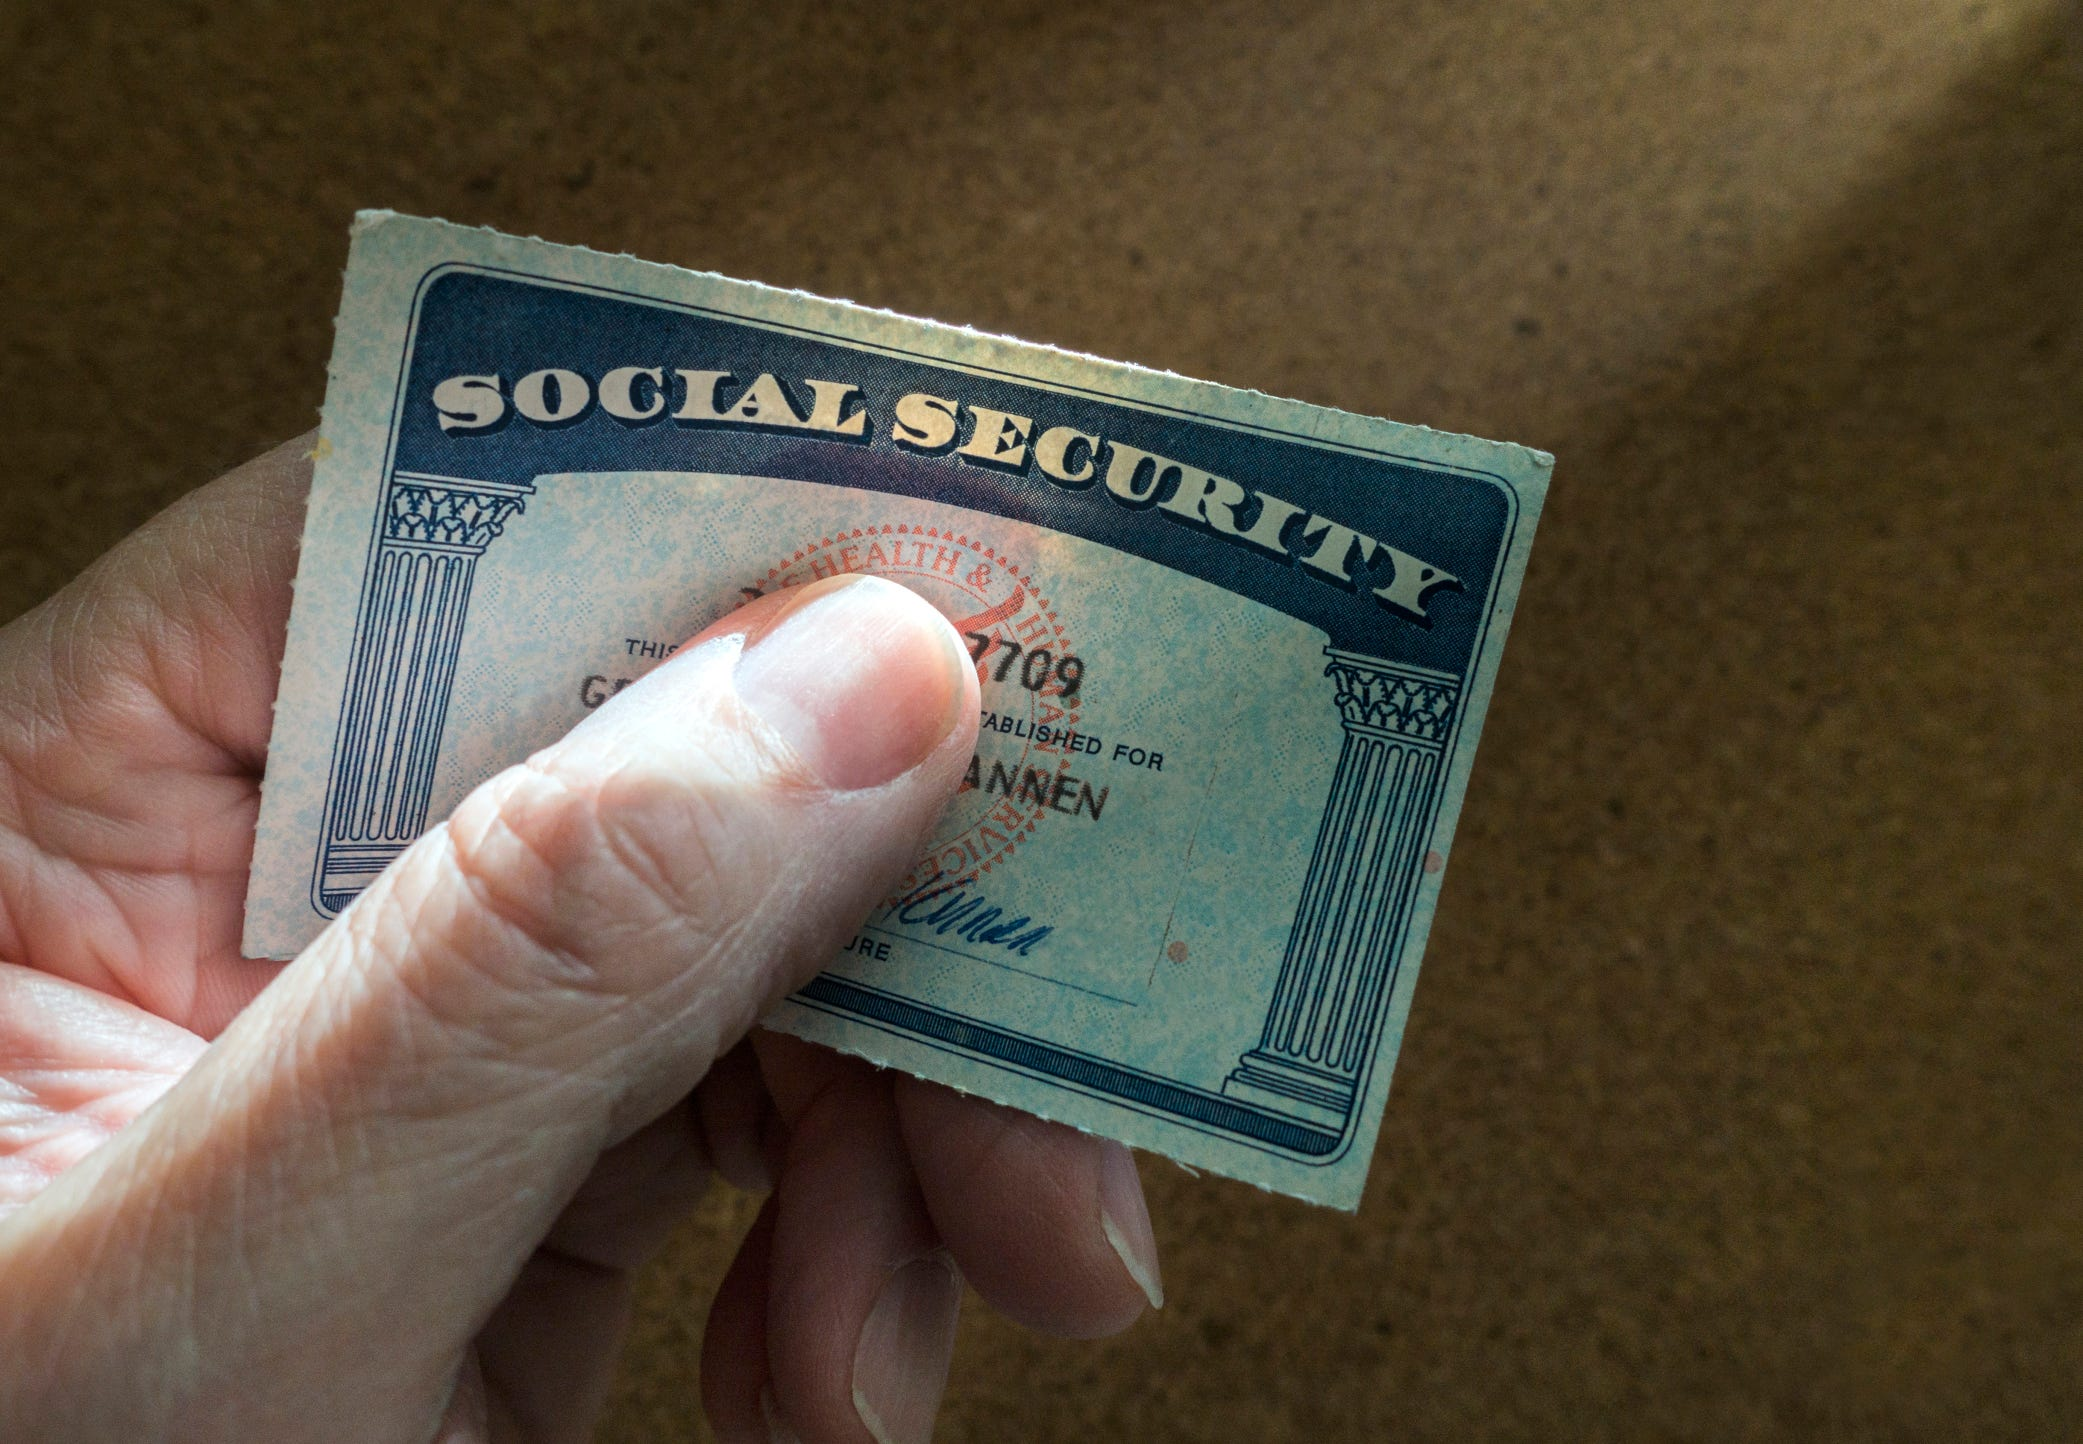 New online tool does Social Security benefit math for you